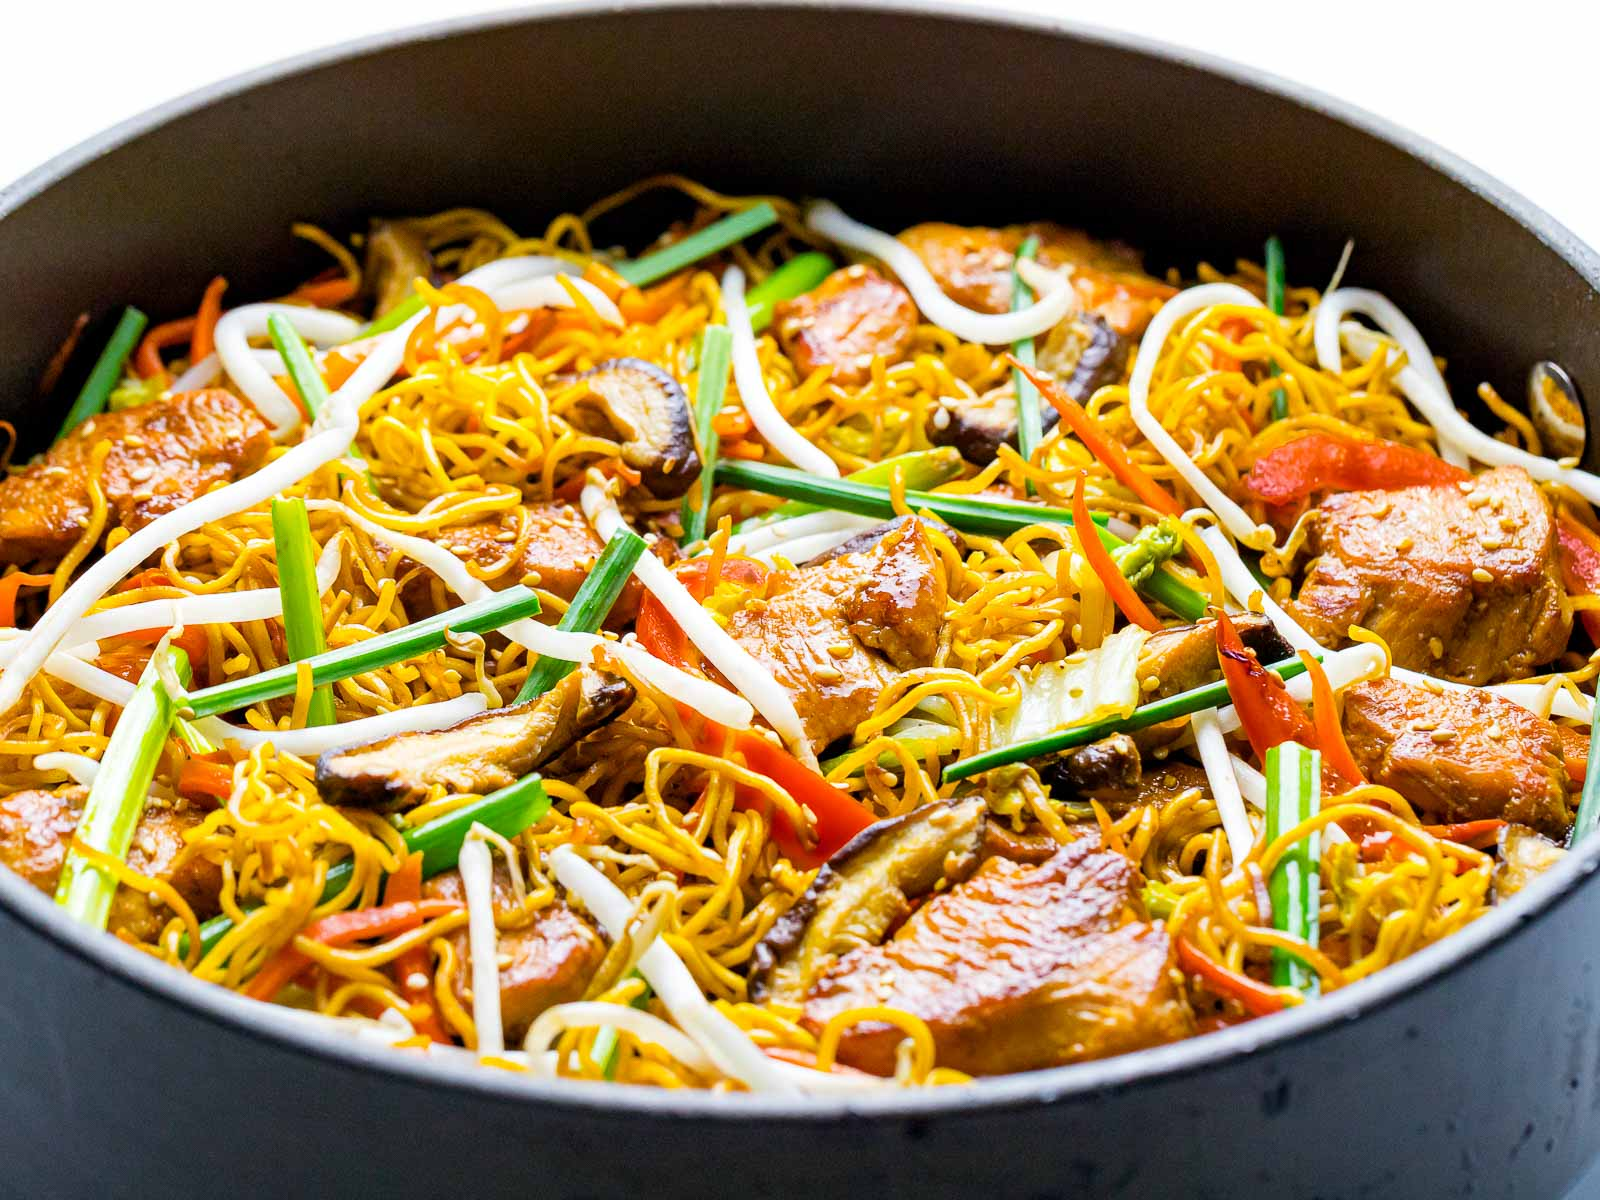 chicken chow mein with vegetables and bean sprouts in a pan